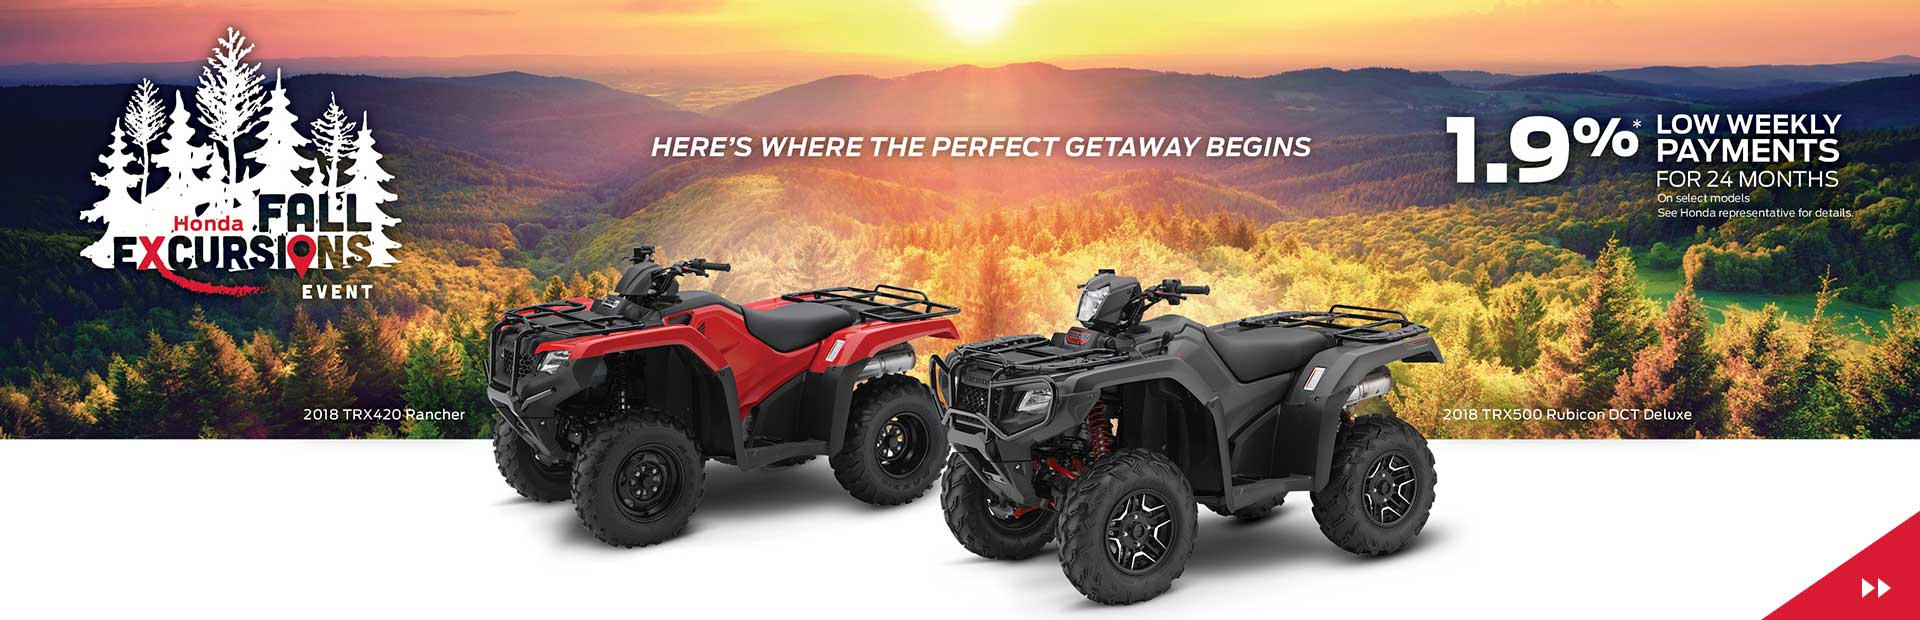 Honda Fall Excursions Event   Financing From 1.9% Oac For 24 Months!